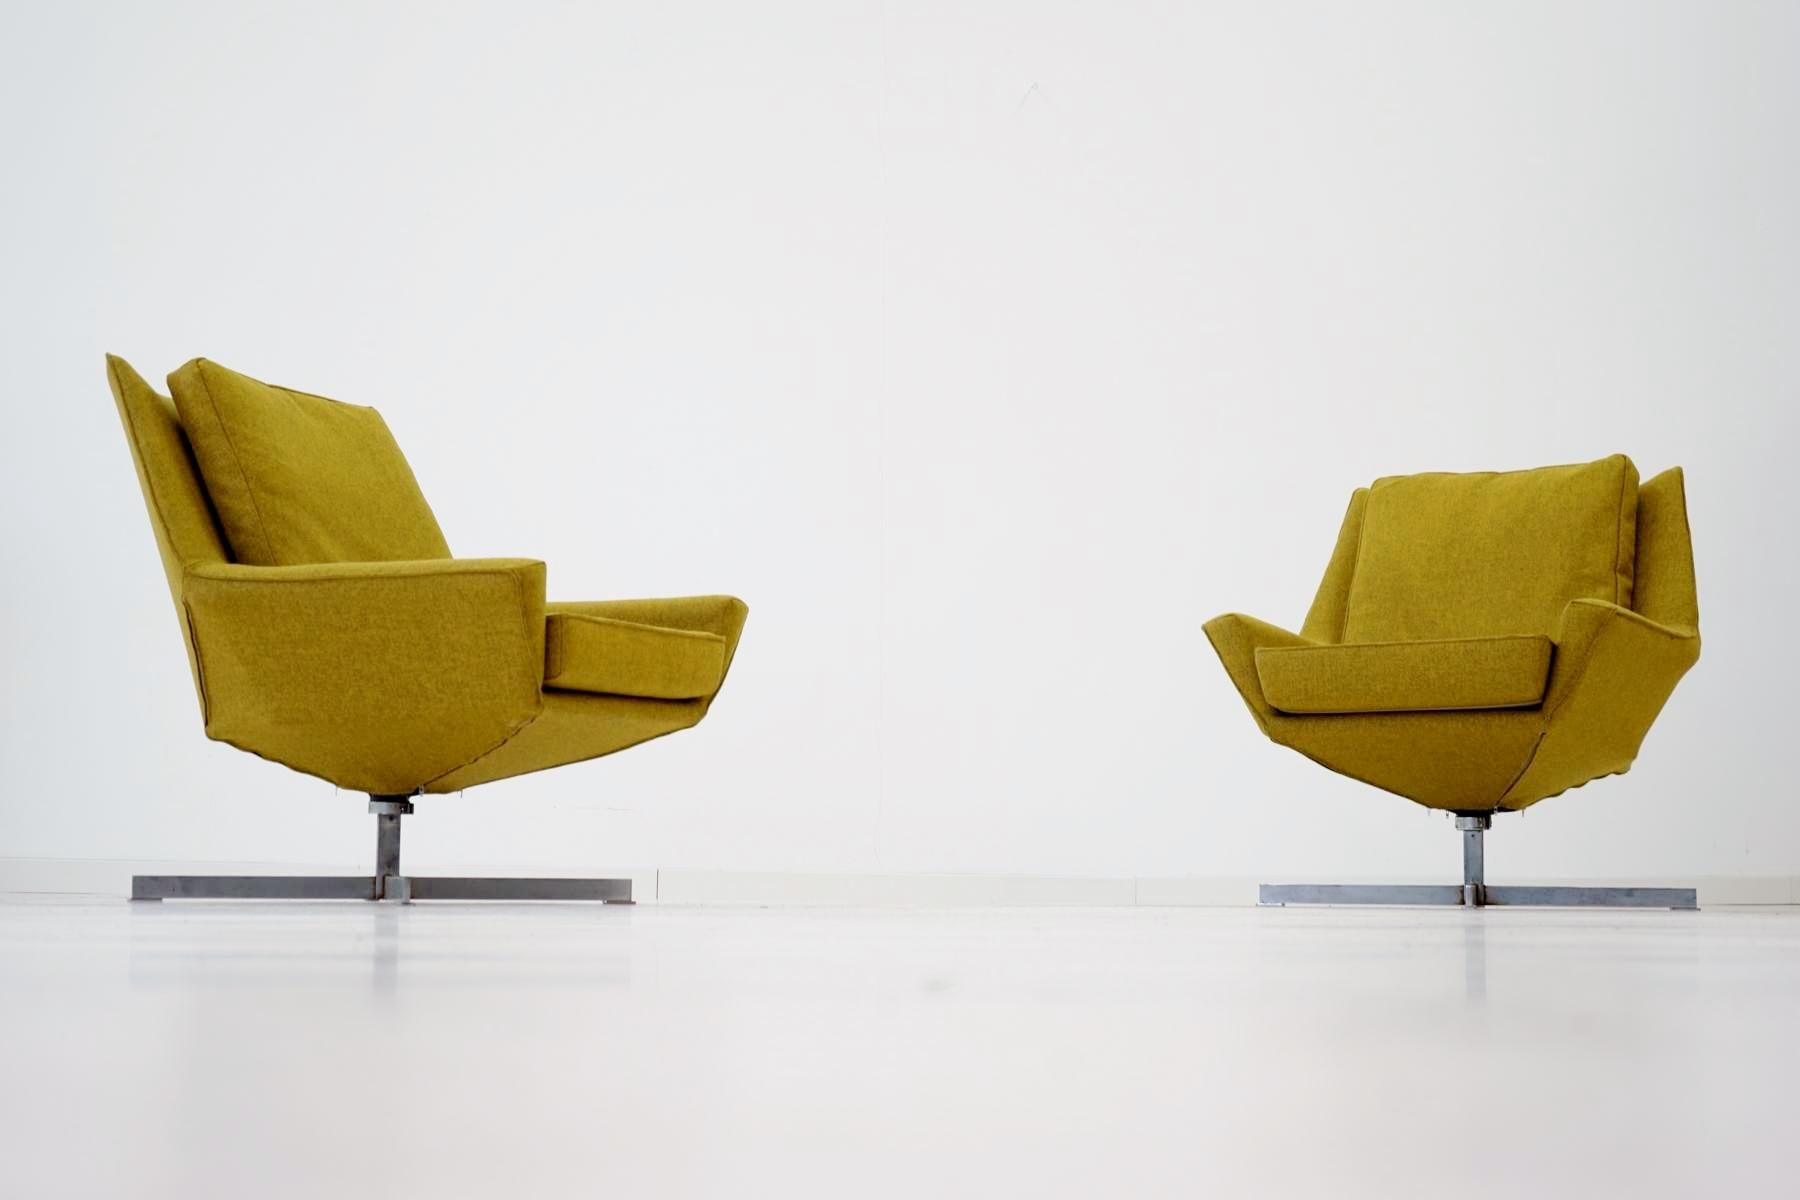 Lounge chairs from knoll 1950s set of 2 for sale at pamono - Knoll inc chairs ...